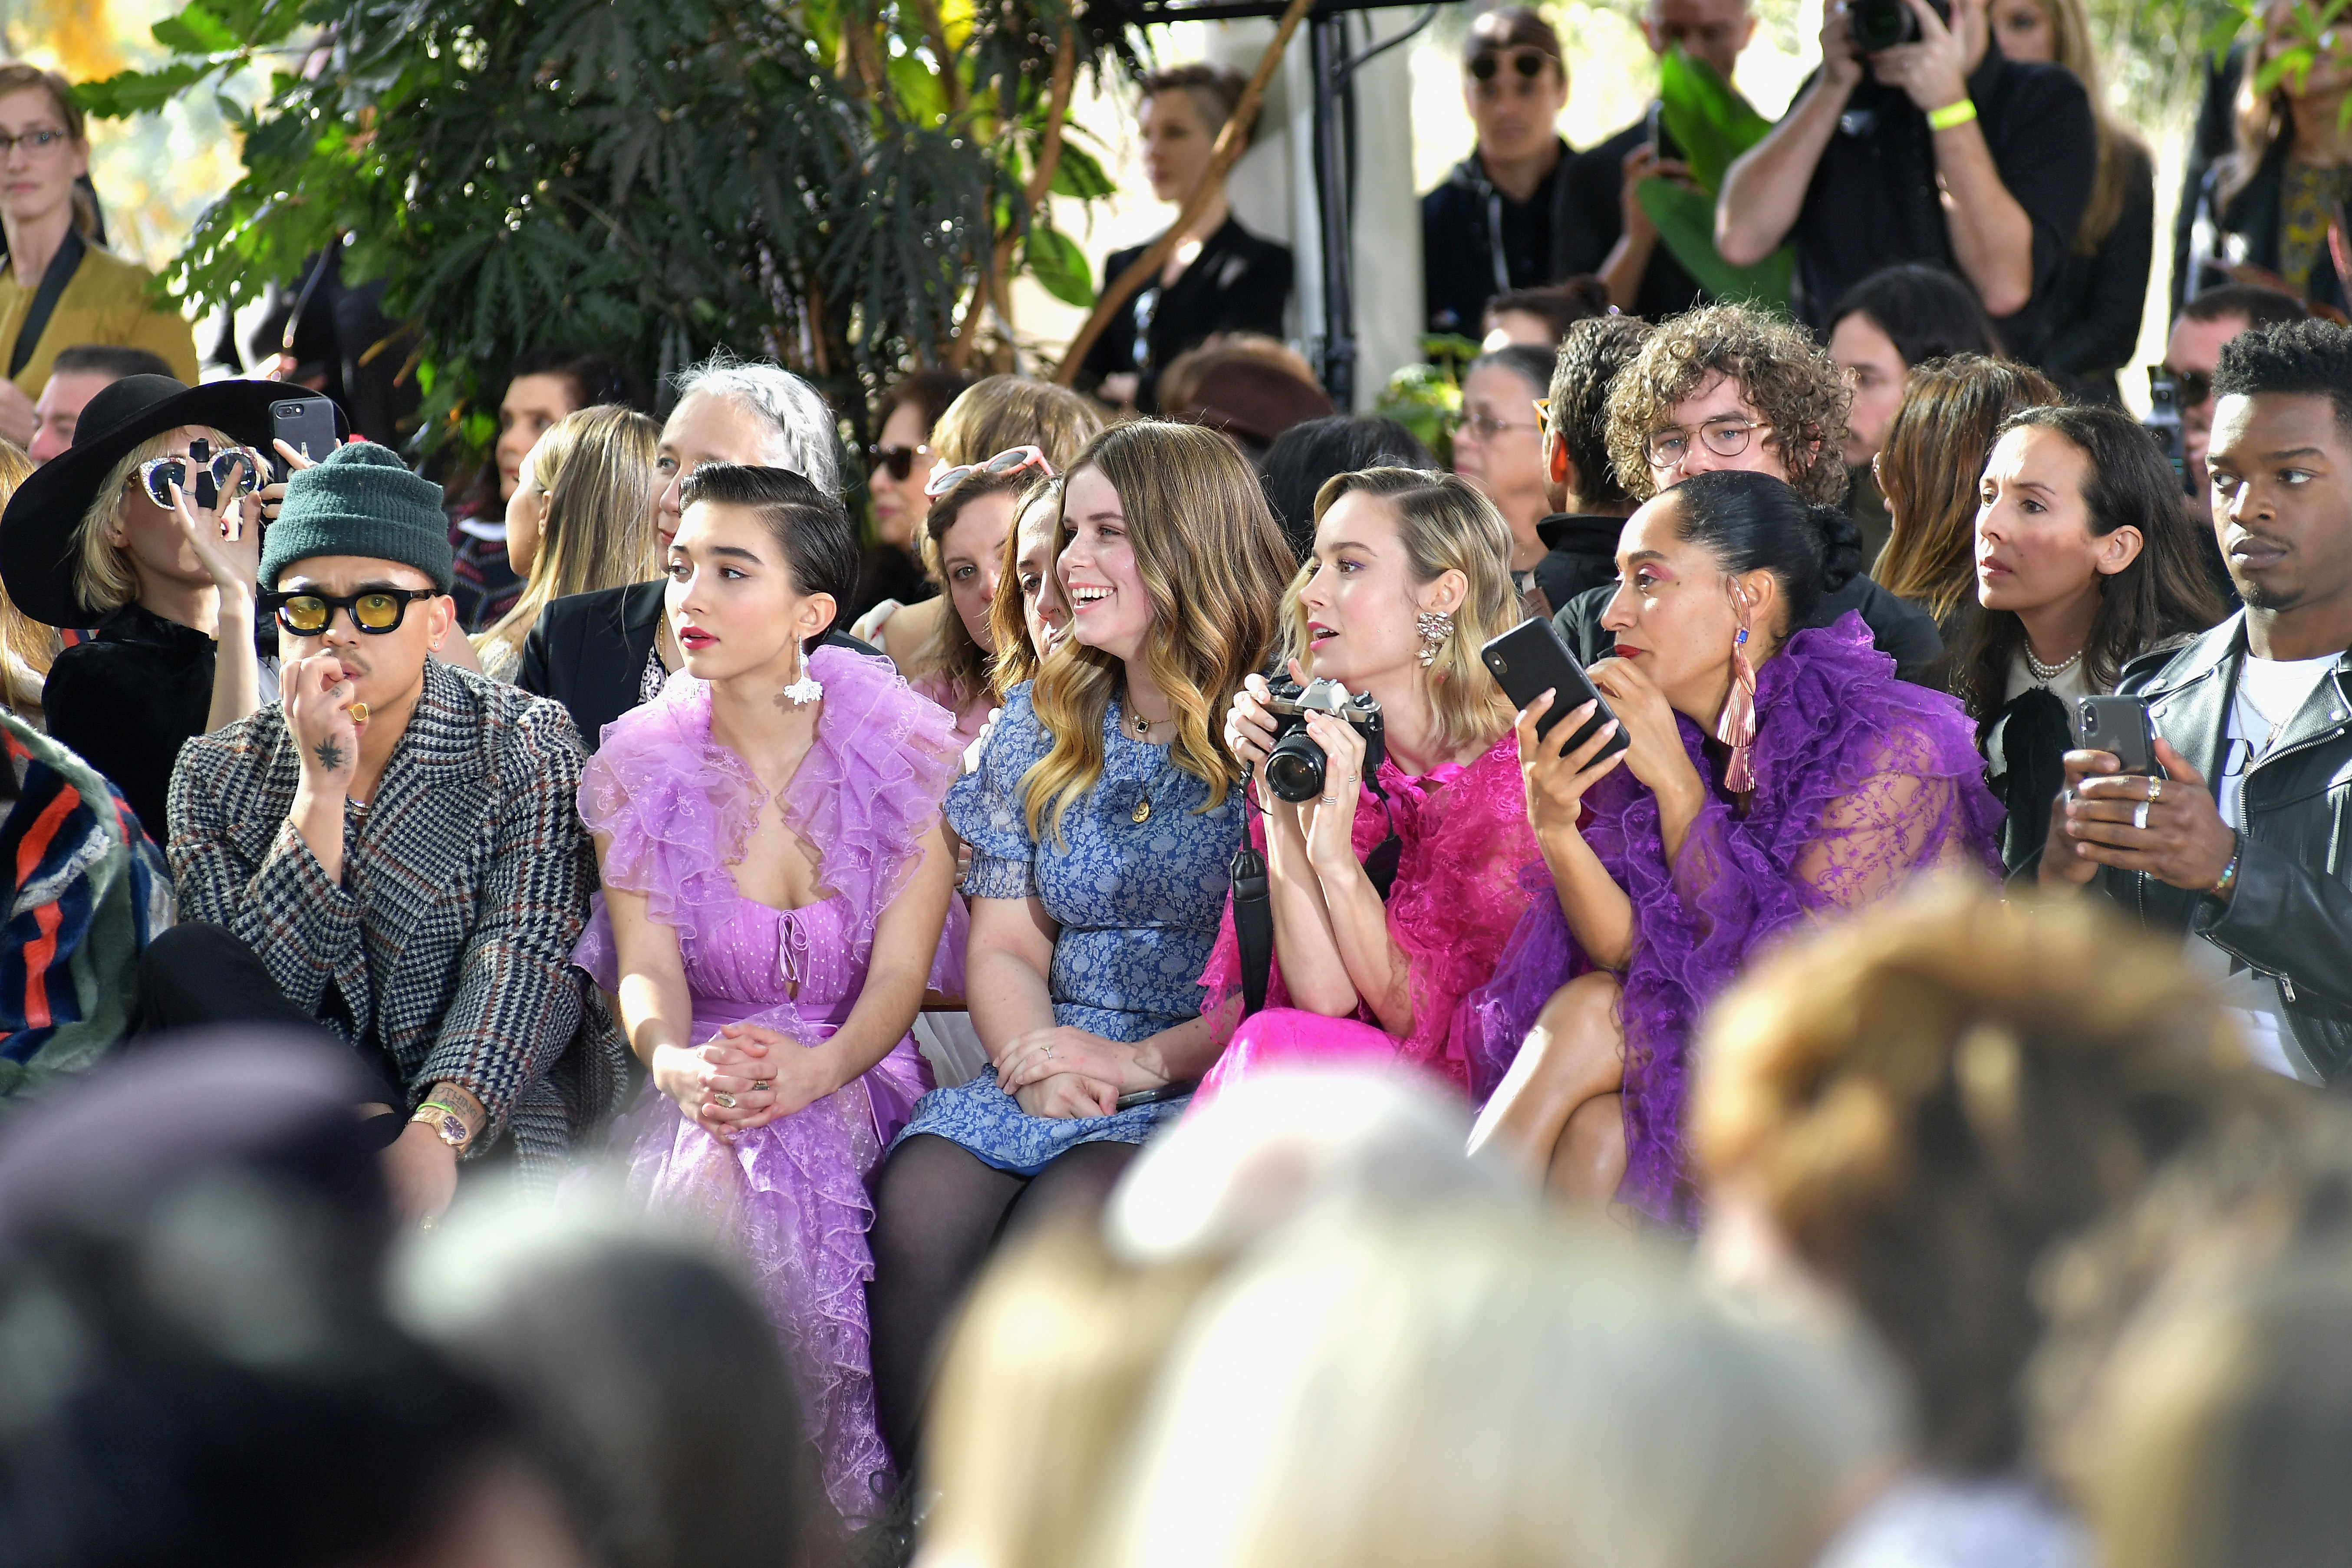 Tracee Ellis Ross, Brie Larson and Rowan Blanchard Were Squad Goals at the Rodarte Show